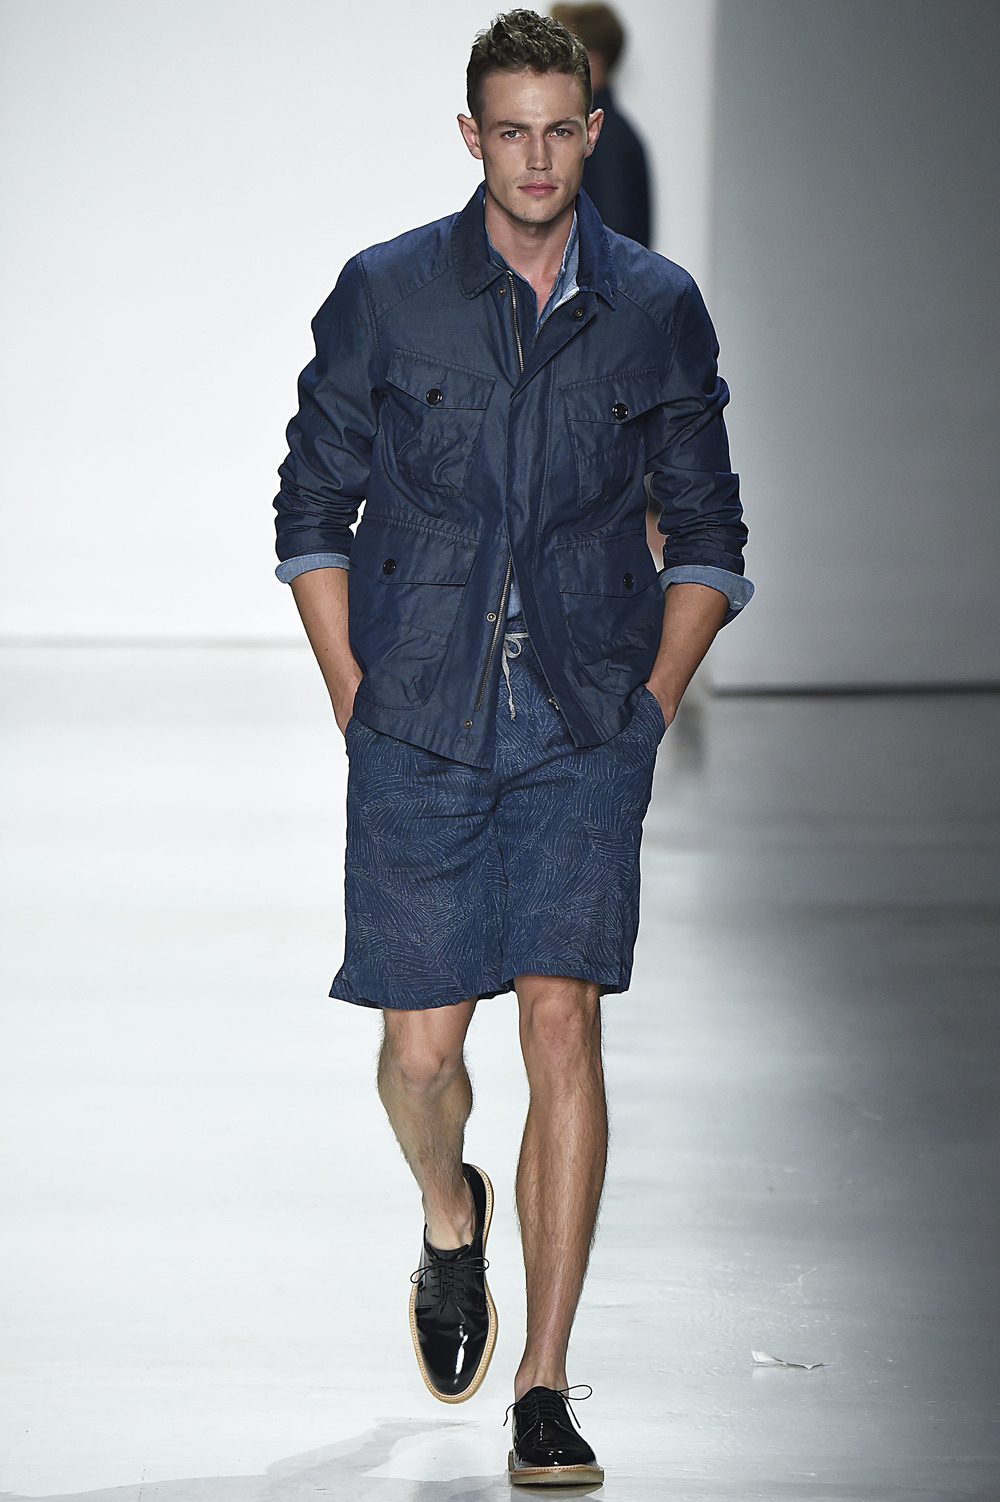 Theo Blix ® NYFW TODD SNYDER All rights reserved 24